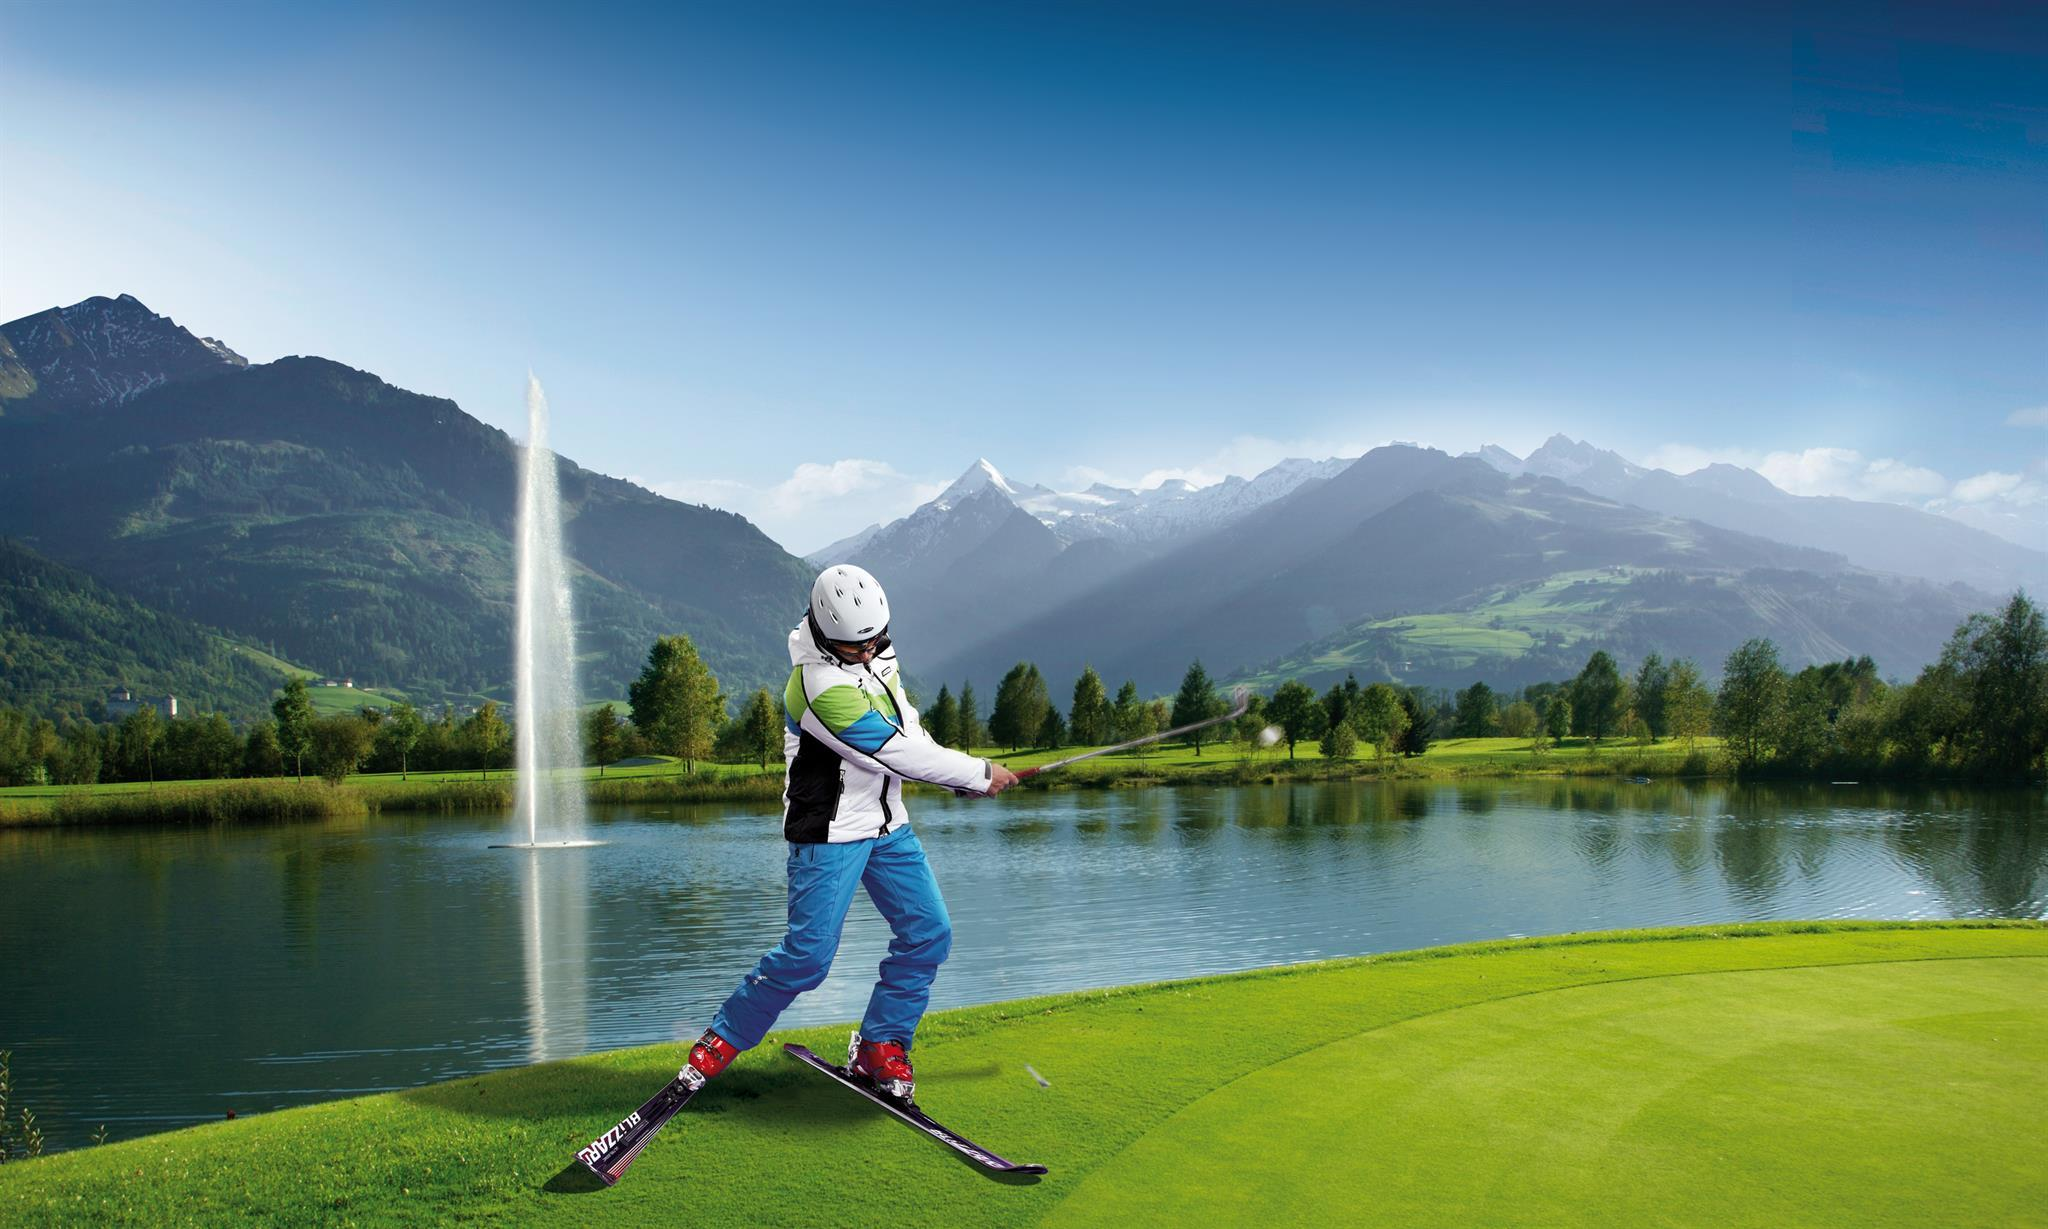 Ski & Golf World Championship 2020 - 21/05/2020